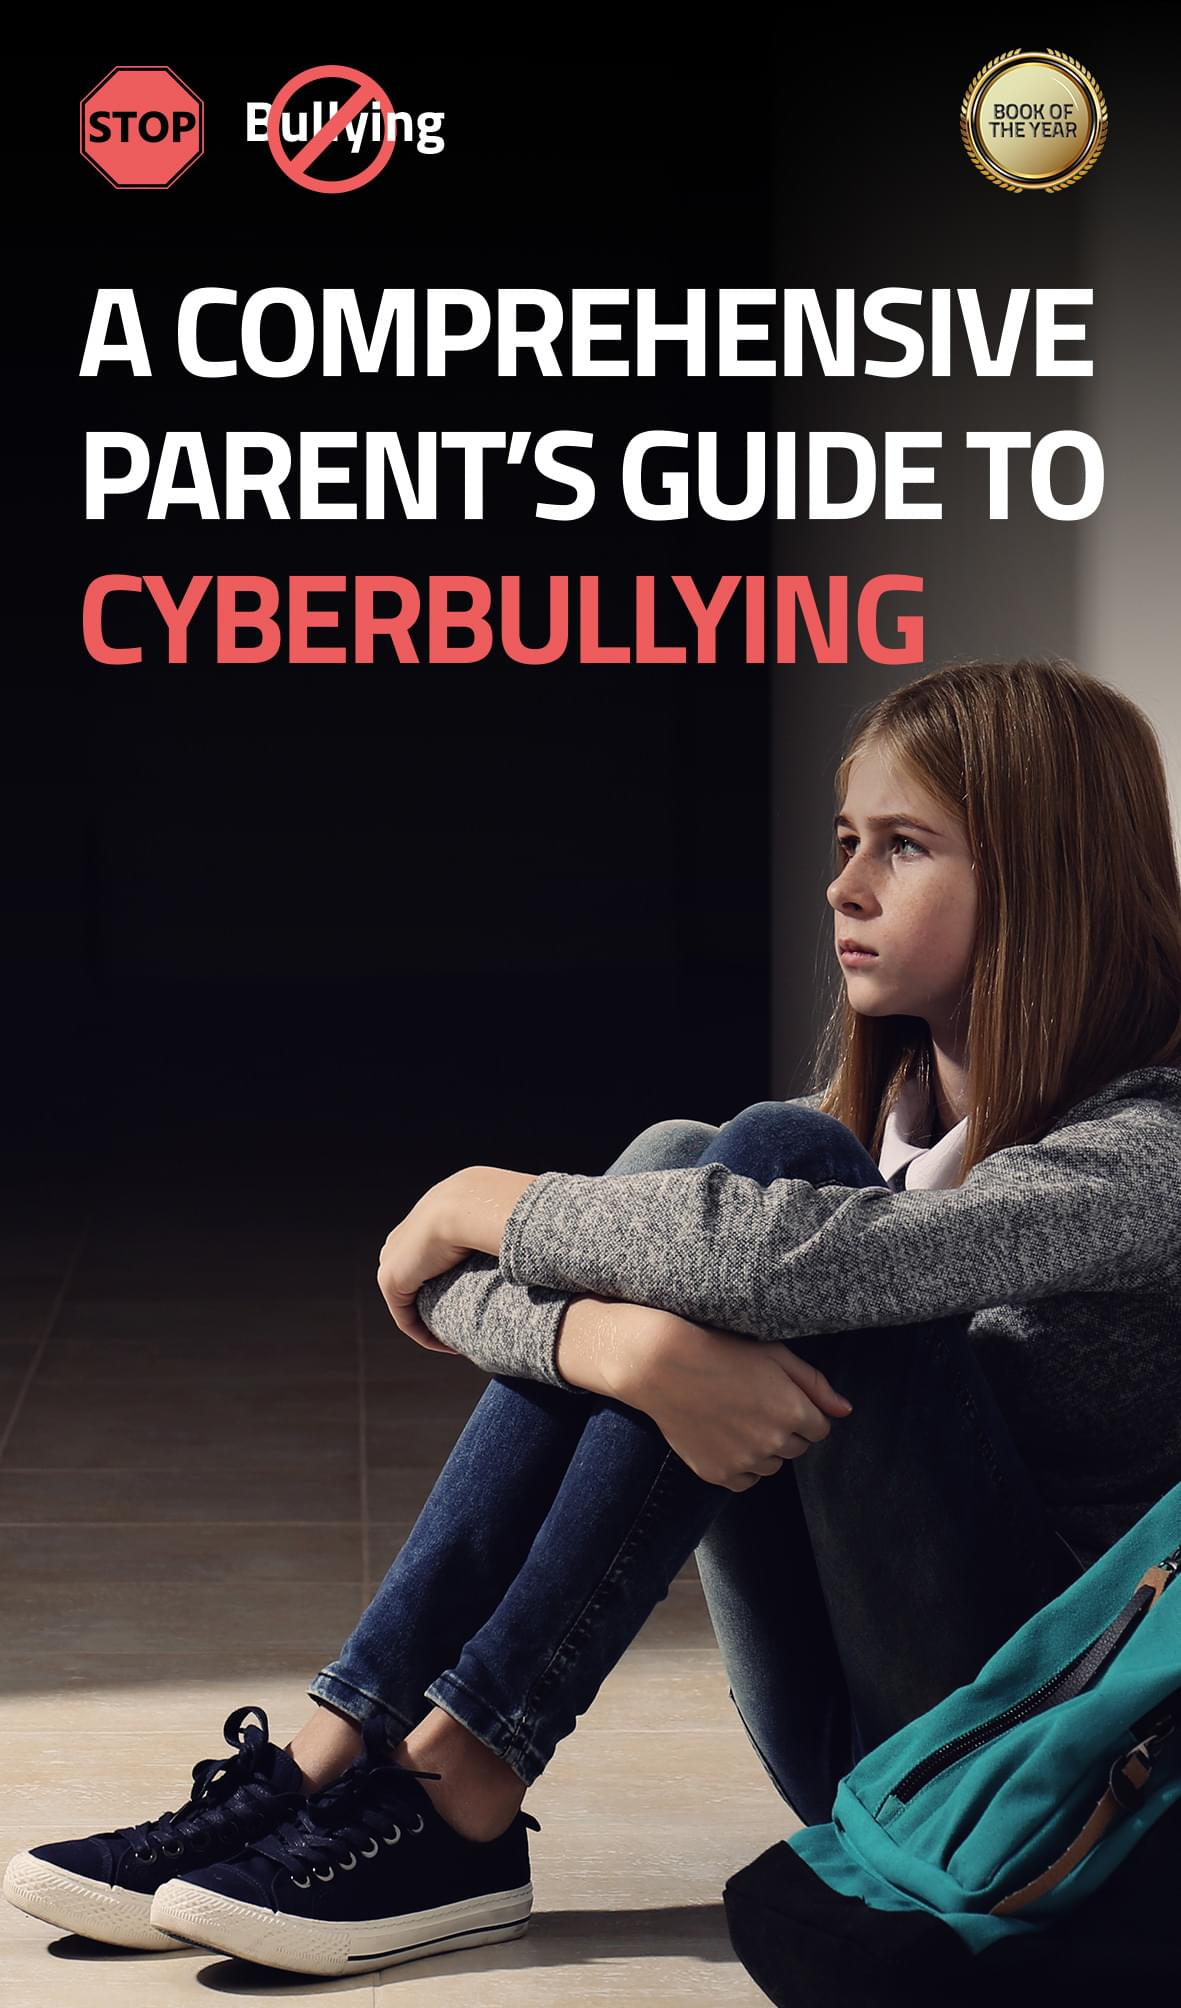 a comprehensive parent's guide to cyberbullying